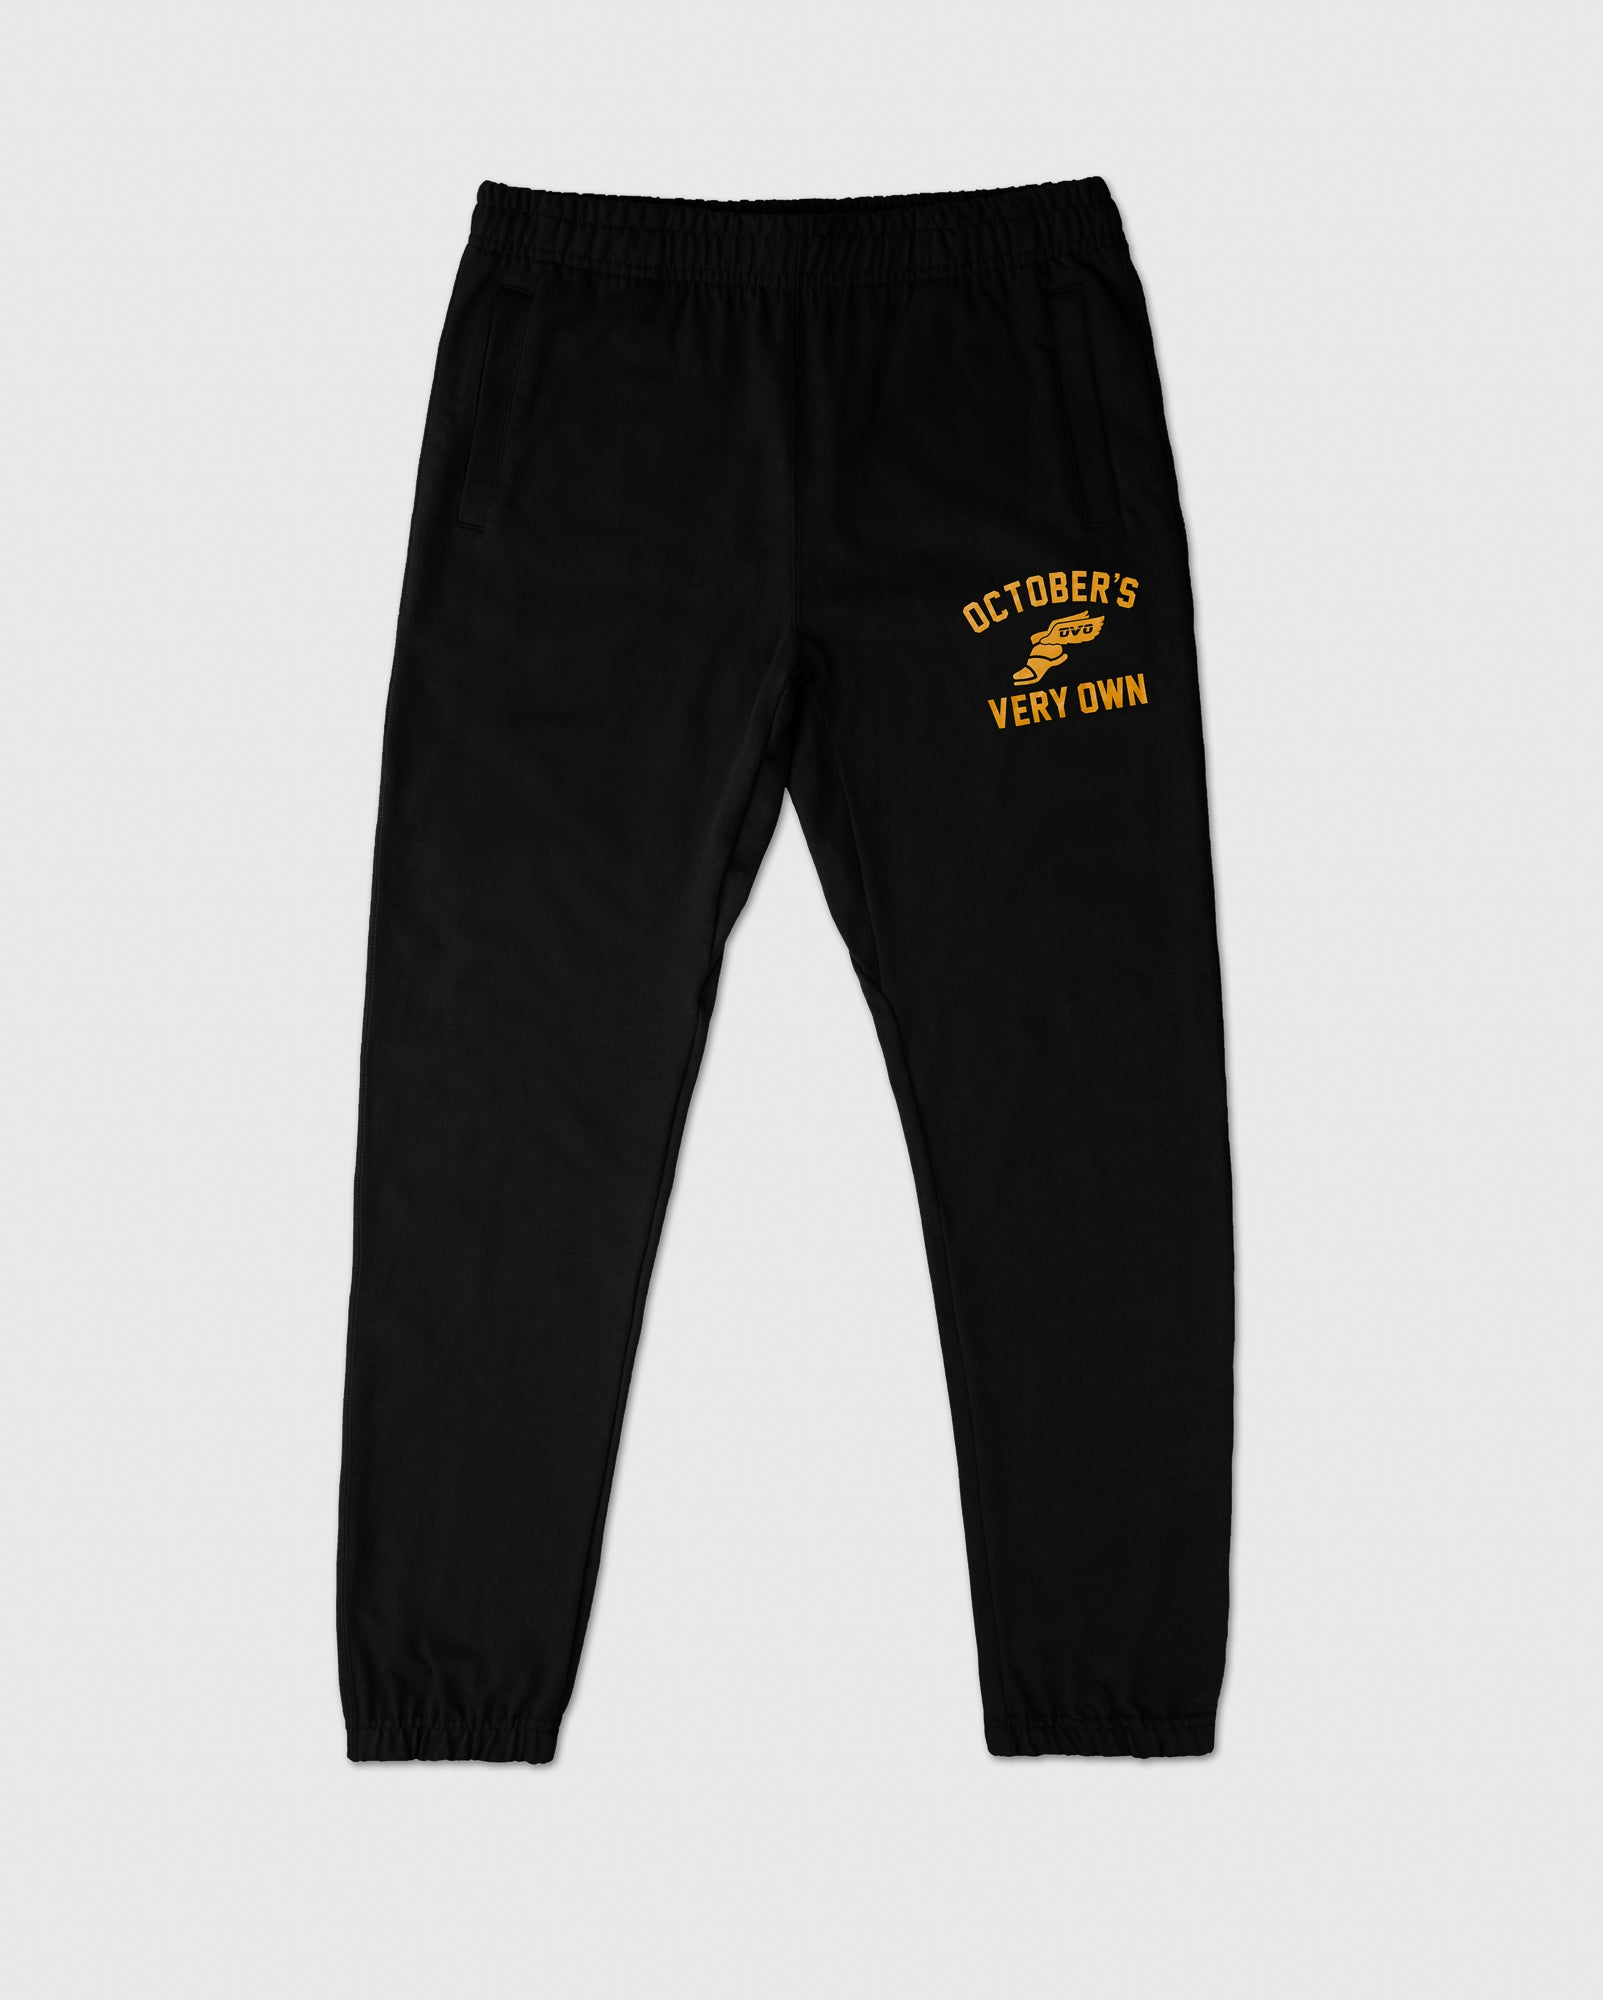 CROSS COUNTRY SWEATPANT - BLACK IMAGE #1